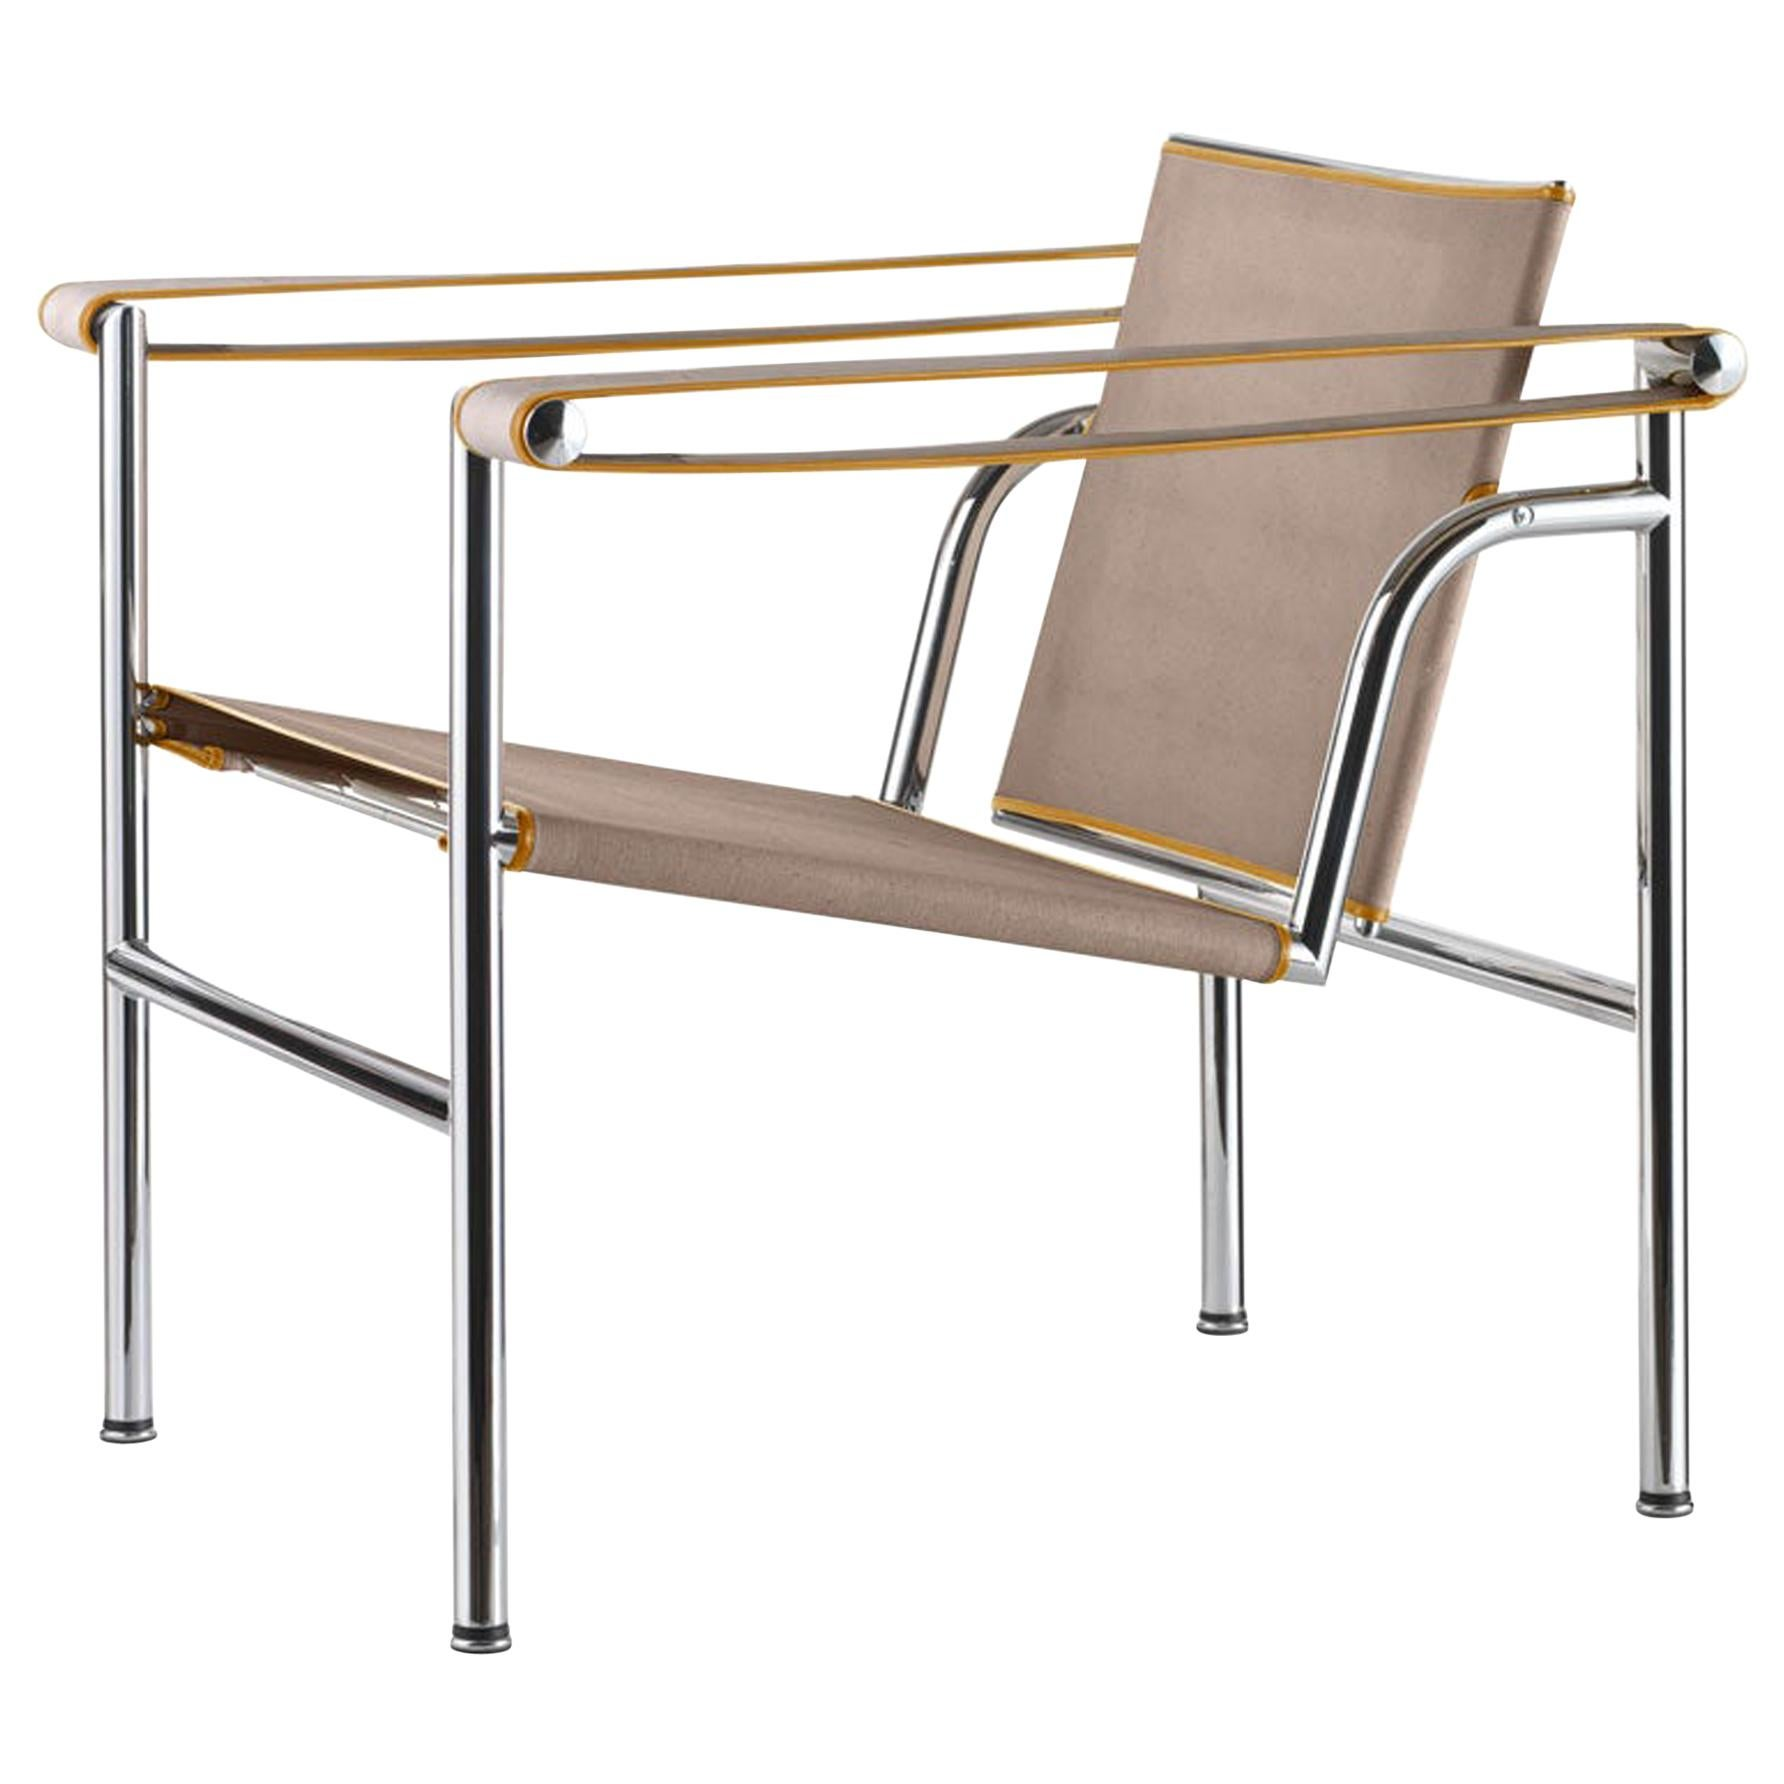 Le Corbusier, P. Jeanneret, C. Perriand LC1 UAM Chair by Cassina